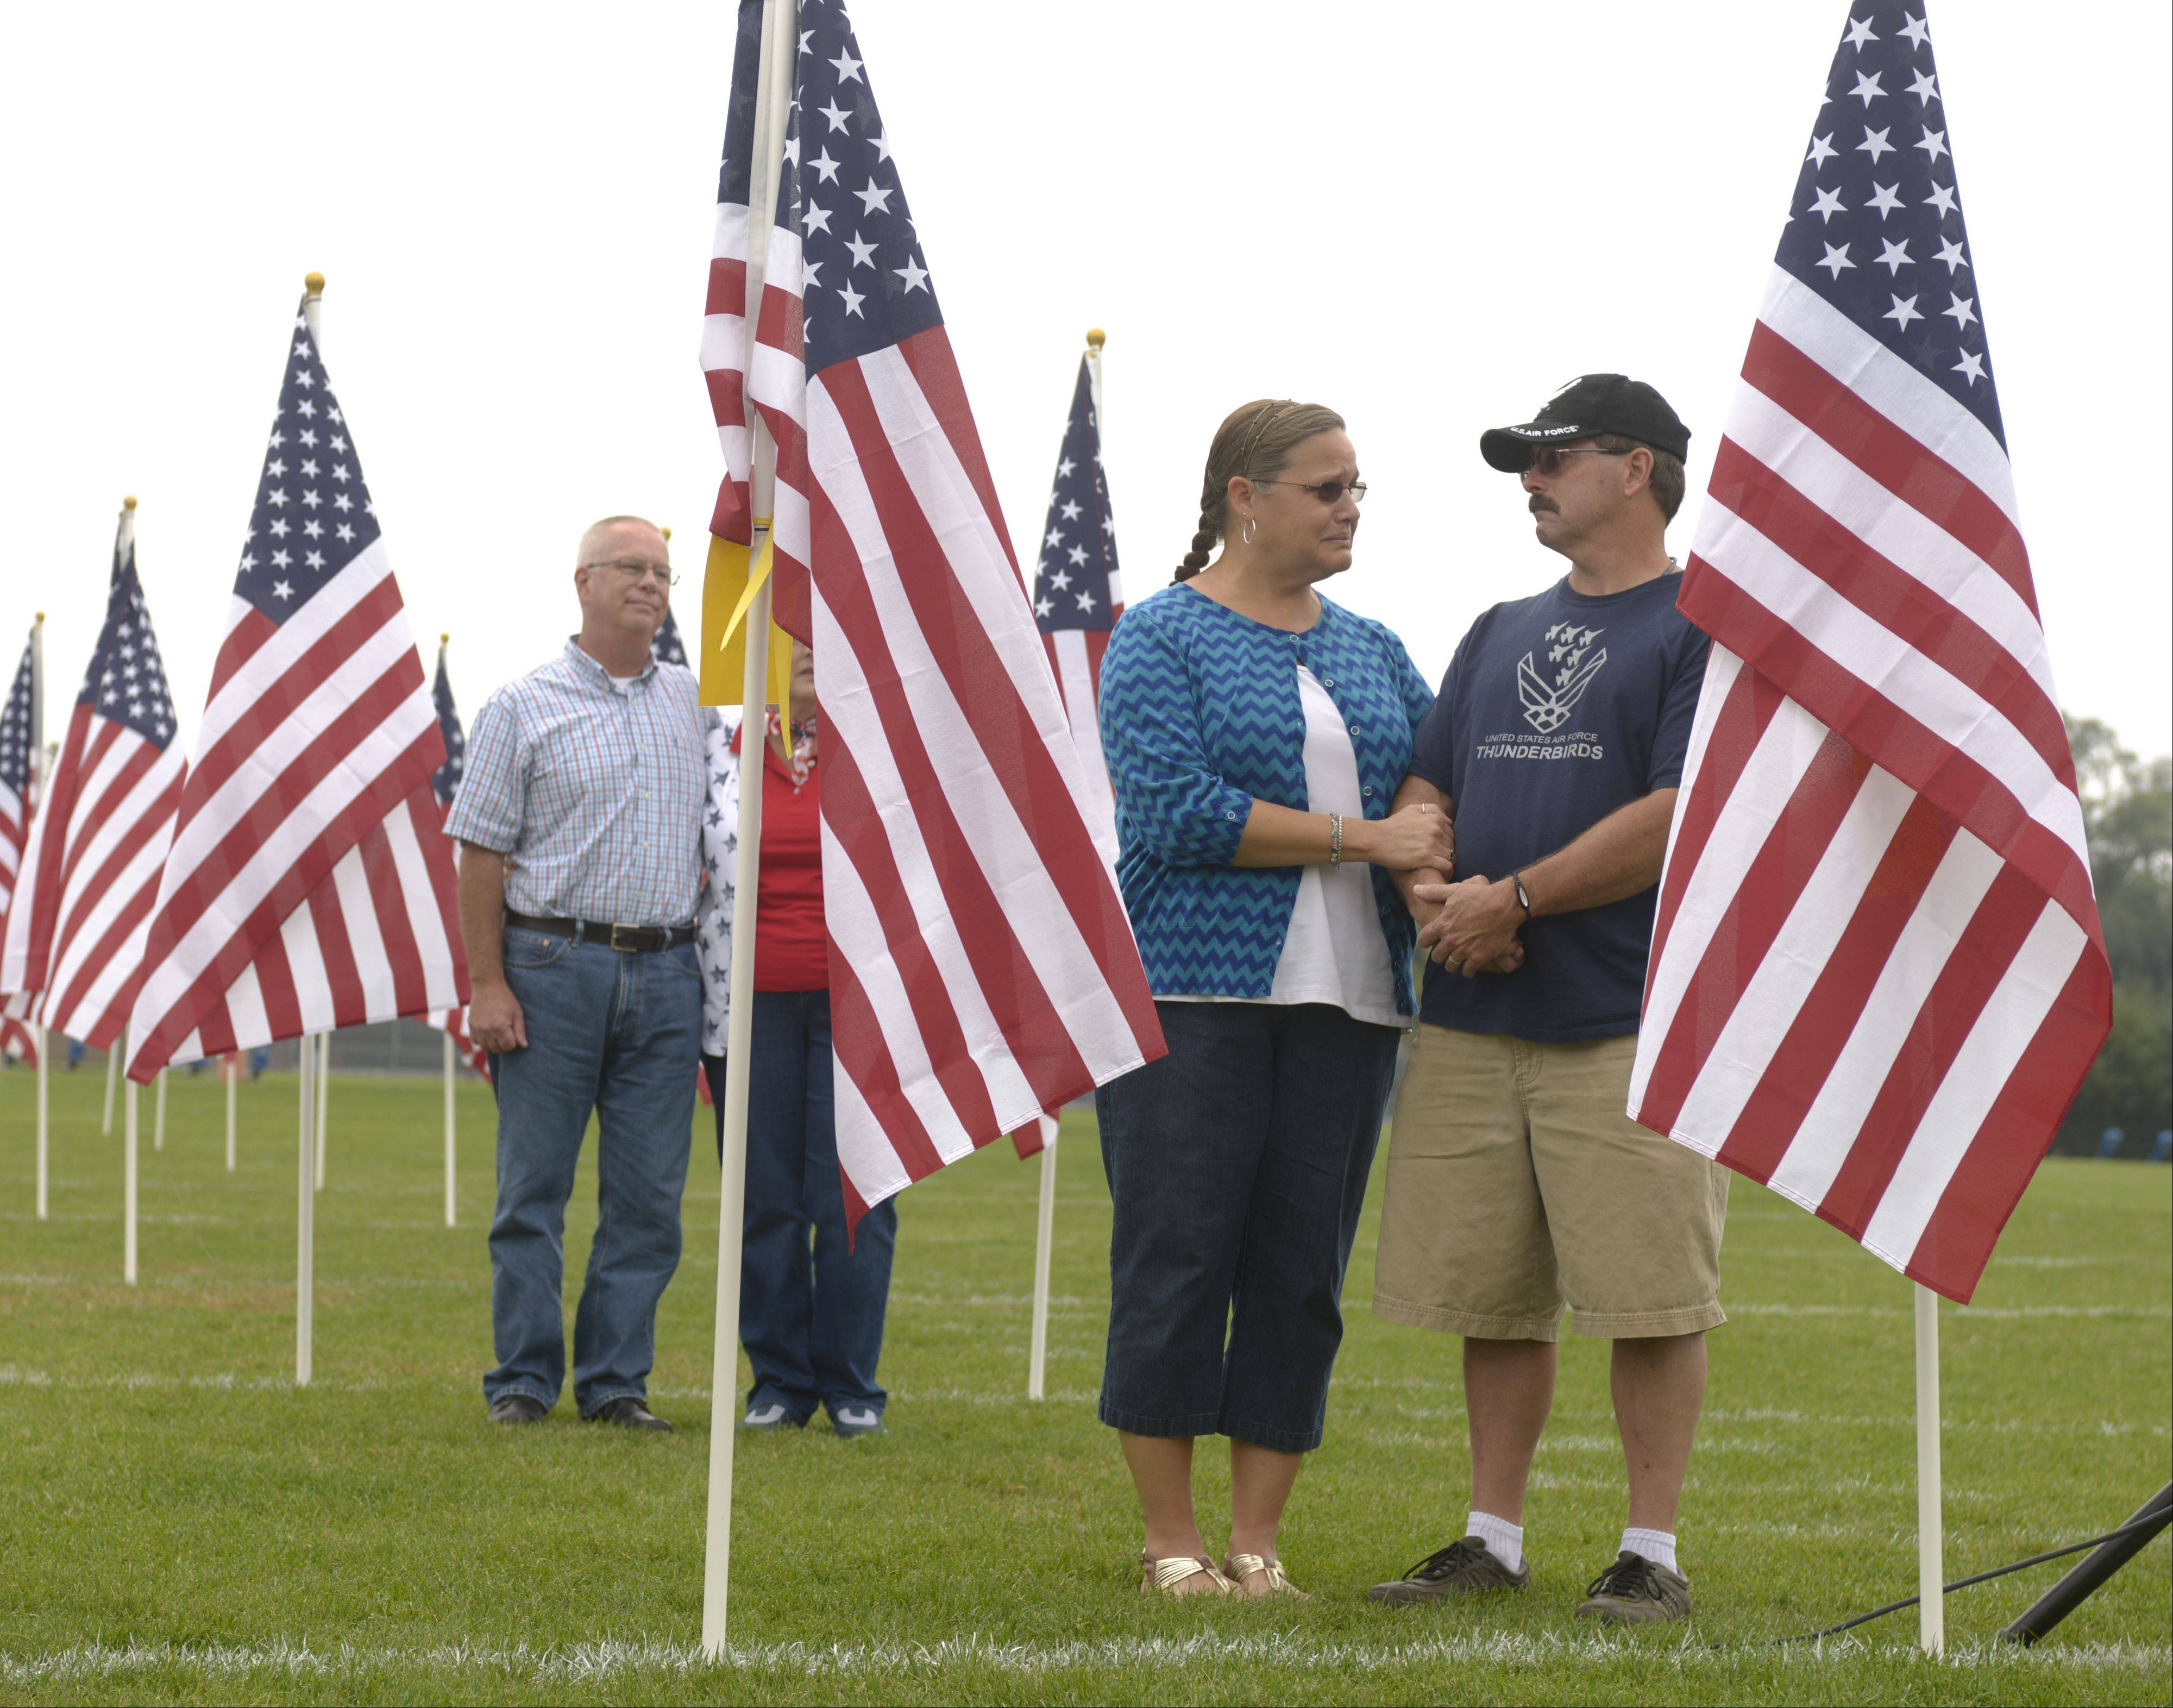 Christine and Bruce Darby of Oswego stand Friday with two flags for their children Nathanial and Allison who both are serving in the Air Force, during a ceremony previewing the Healing Field of Honor at West Aurora High School. The field will be open Nov. 3 to 13.